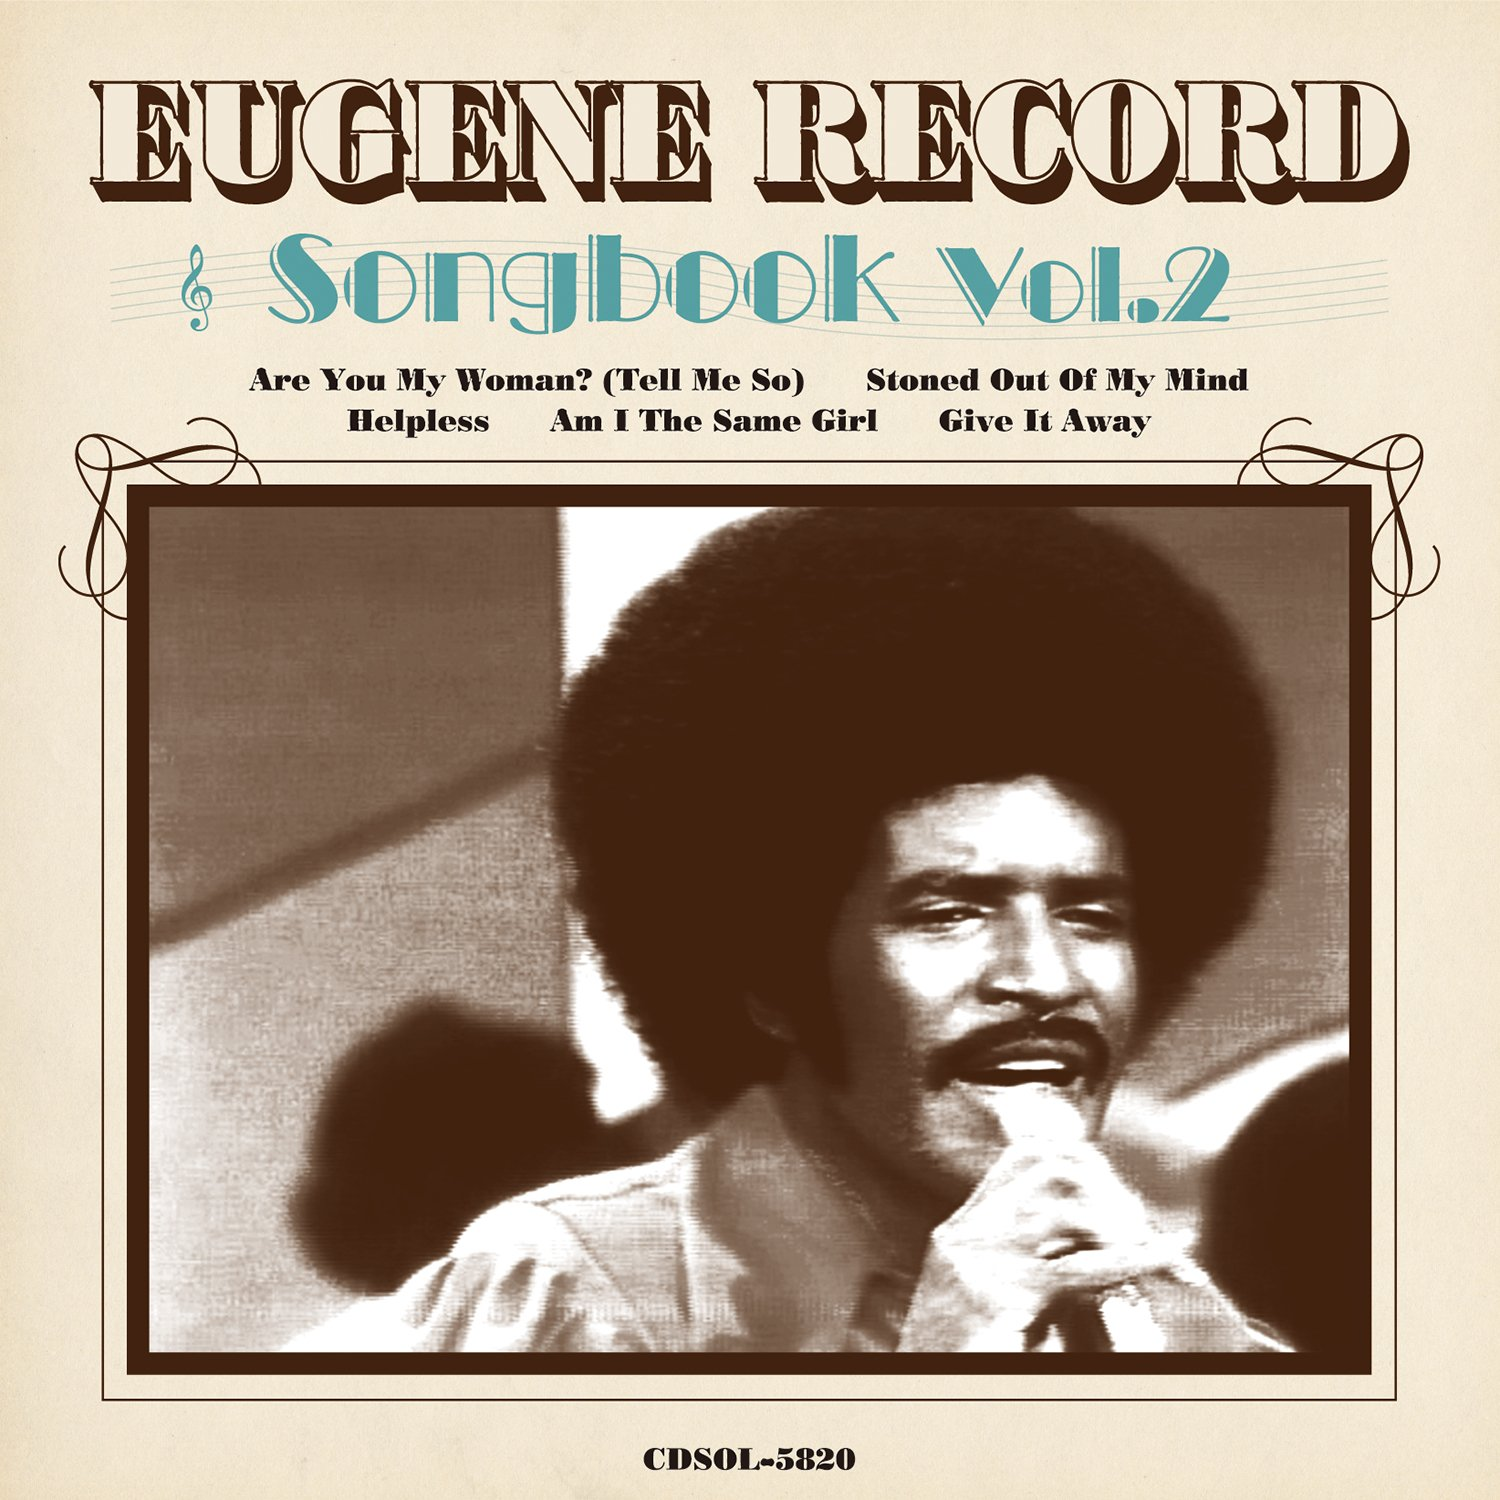 Eugene Record Songbook Vol.2 (Remaster Tracks)